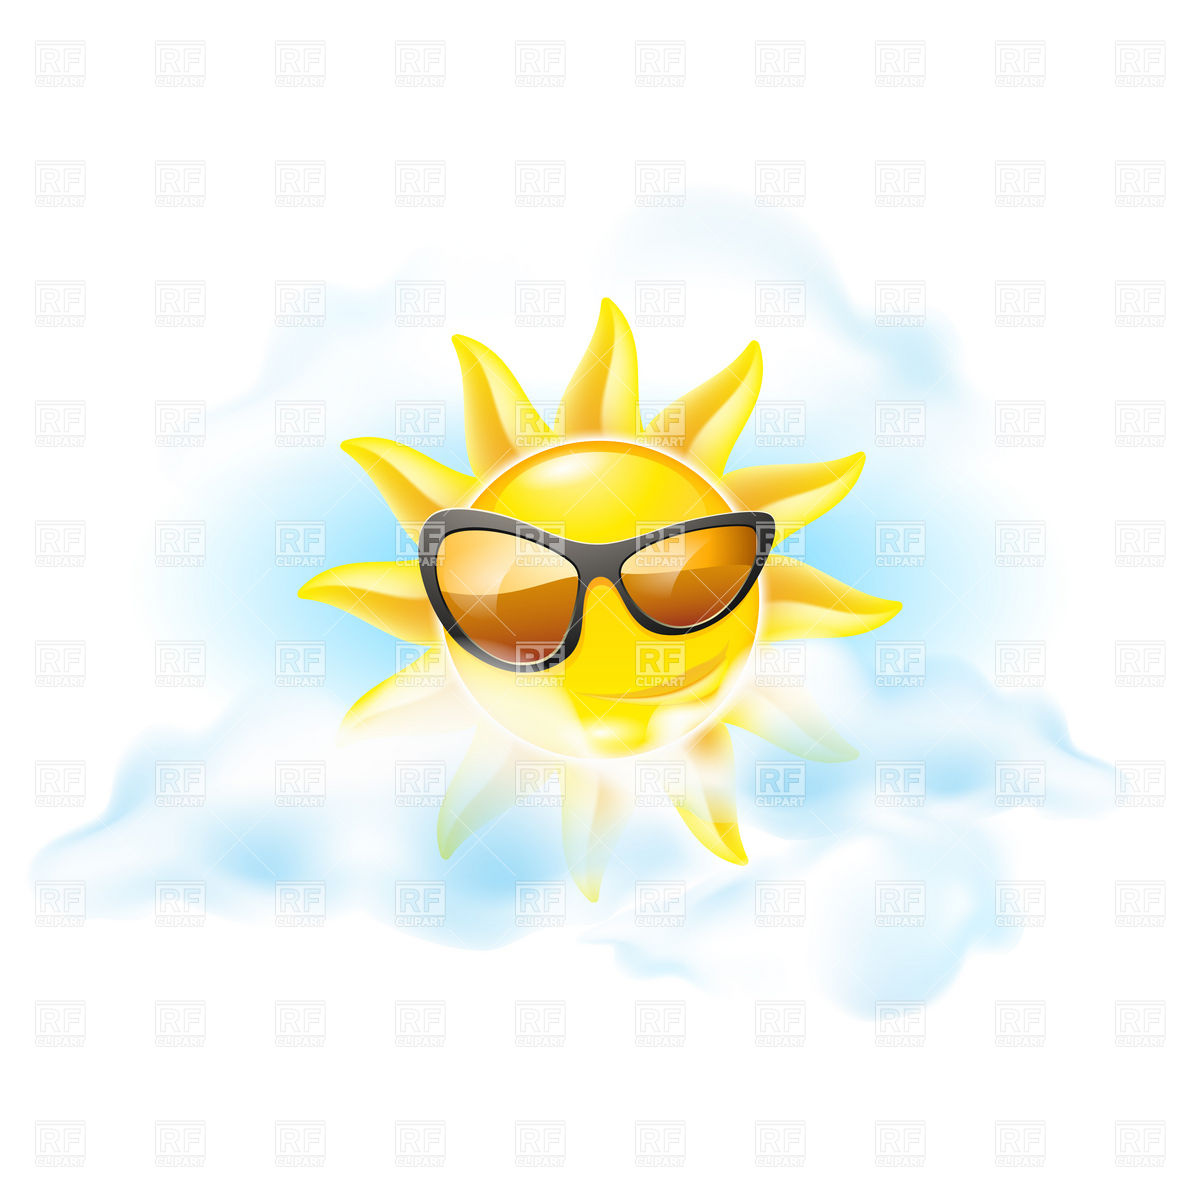 1200x1200 Smiling Sun In Sunglasses Inside Clouds Royalty Free Vector Clip